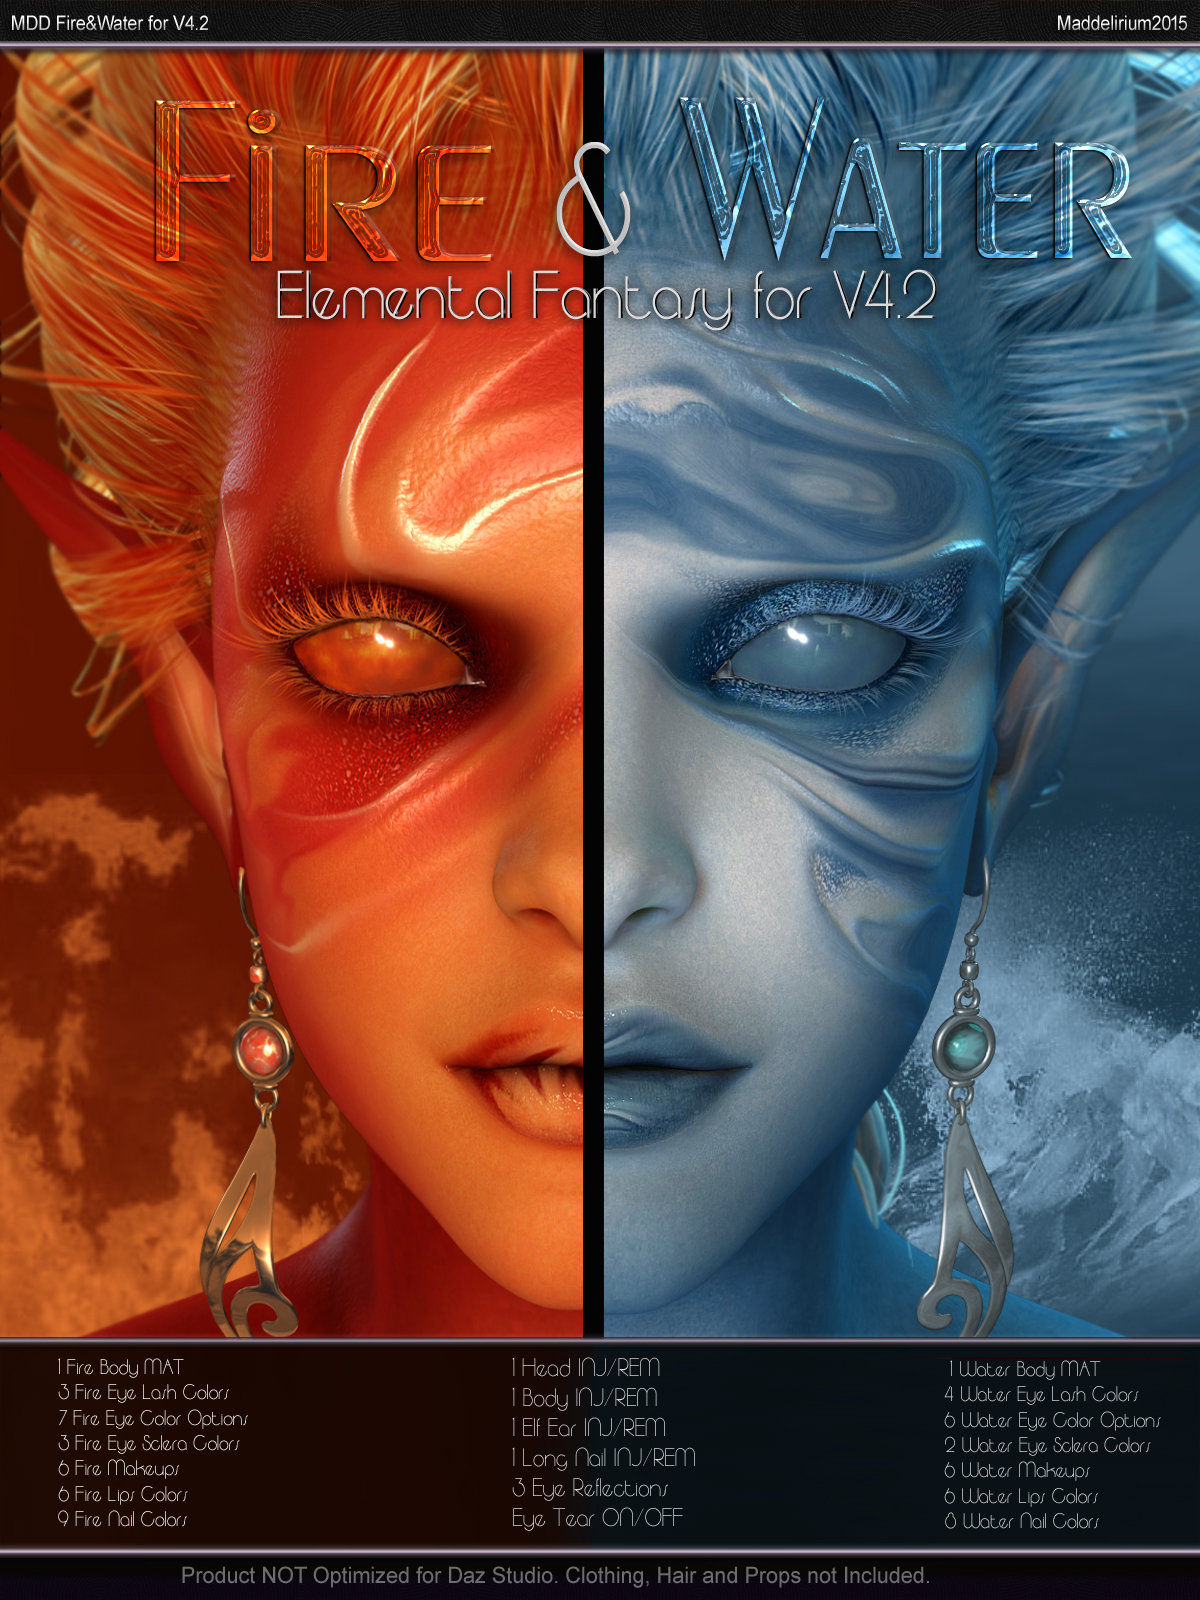 MDD Fire & Water for V4.2